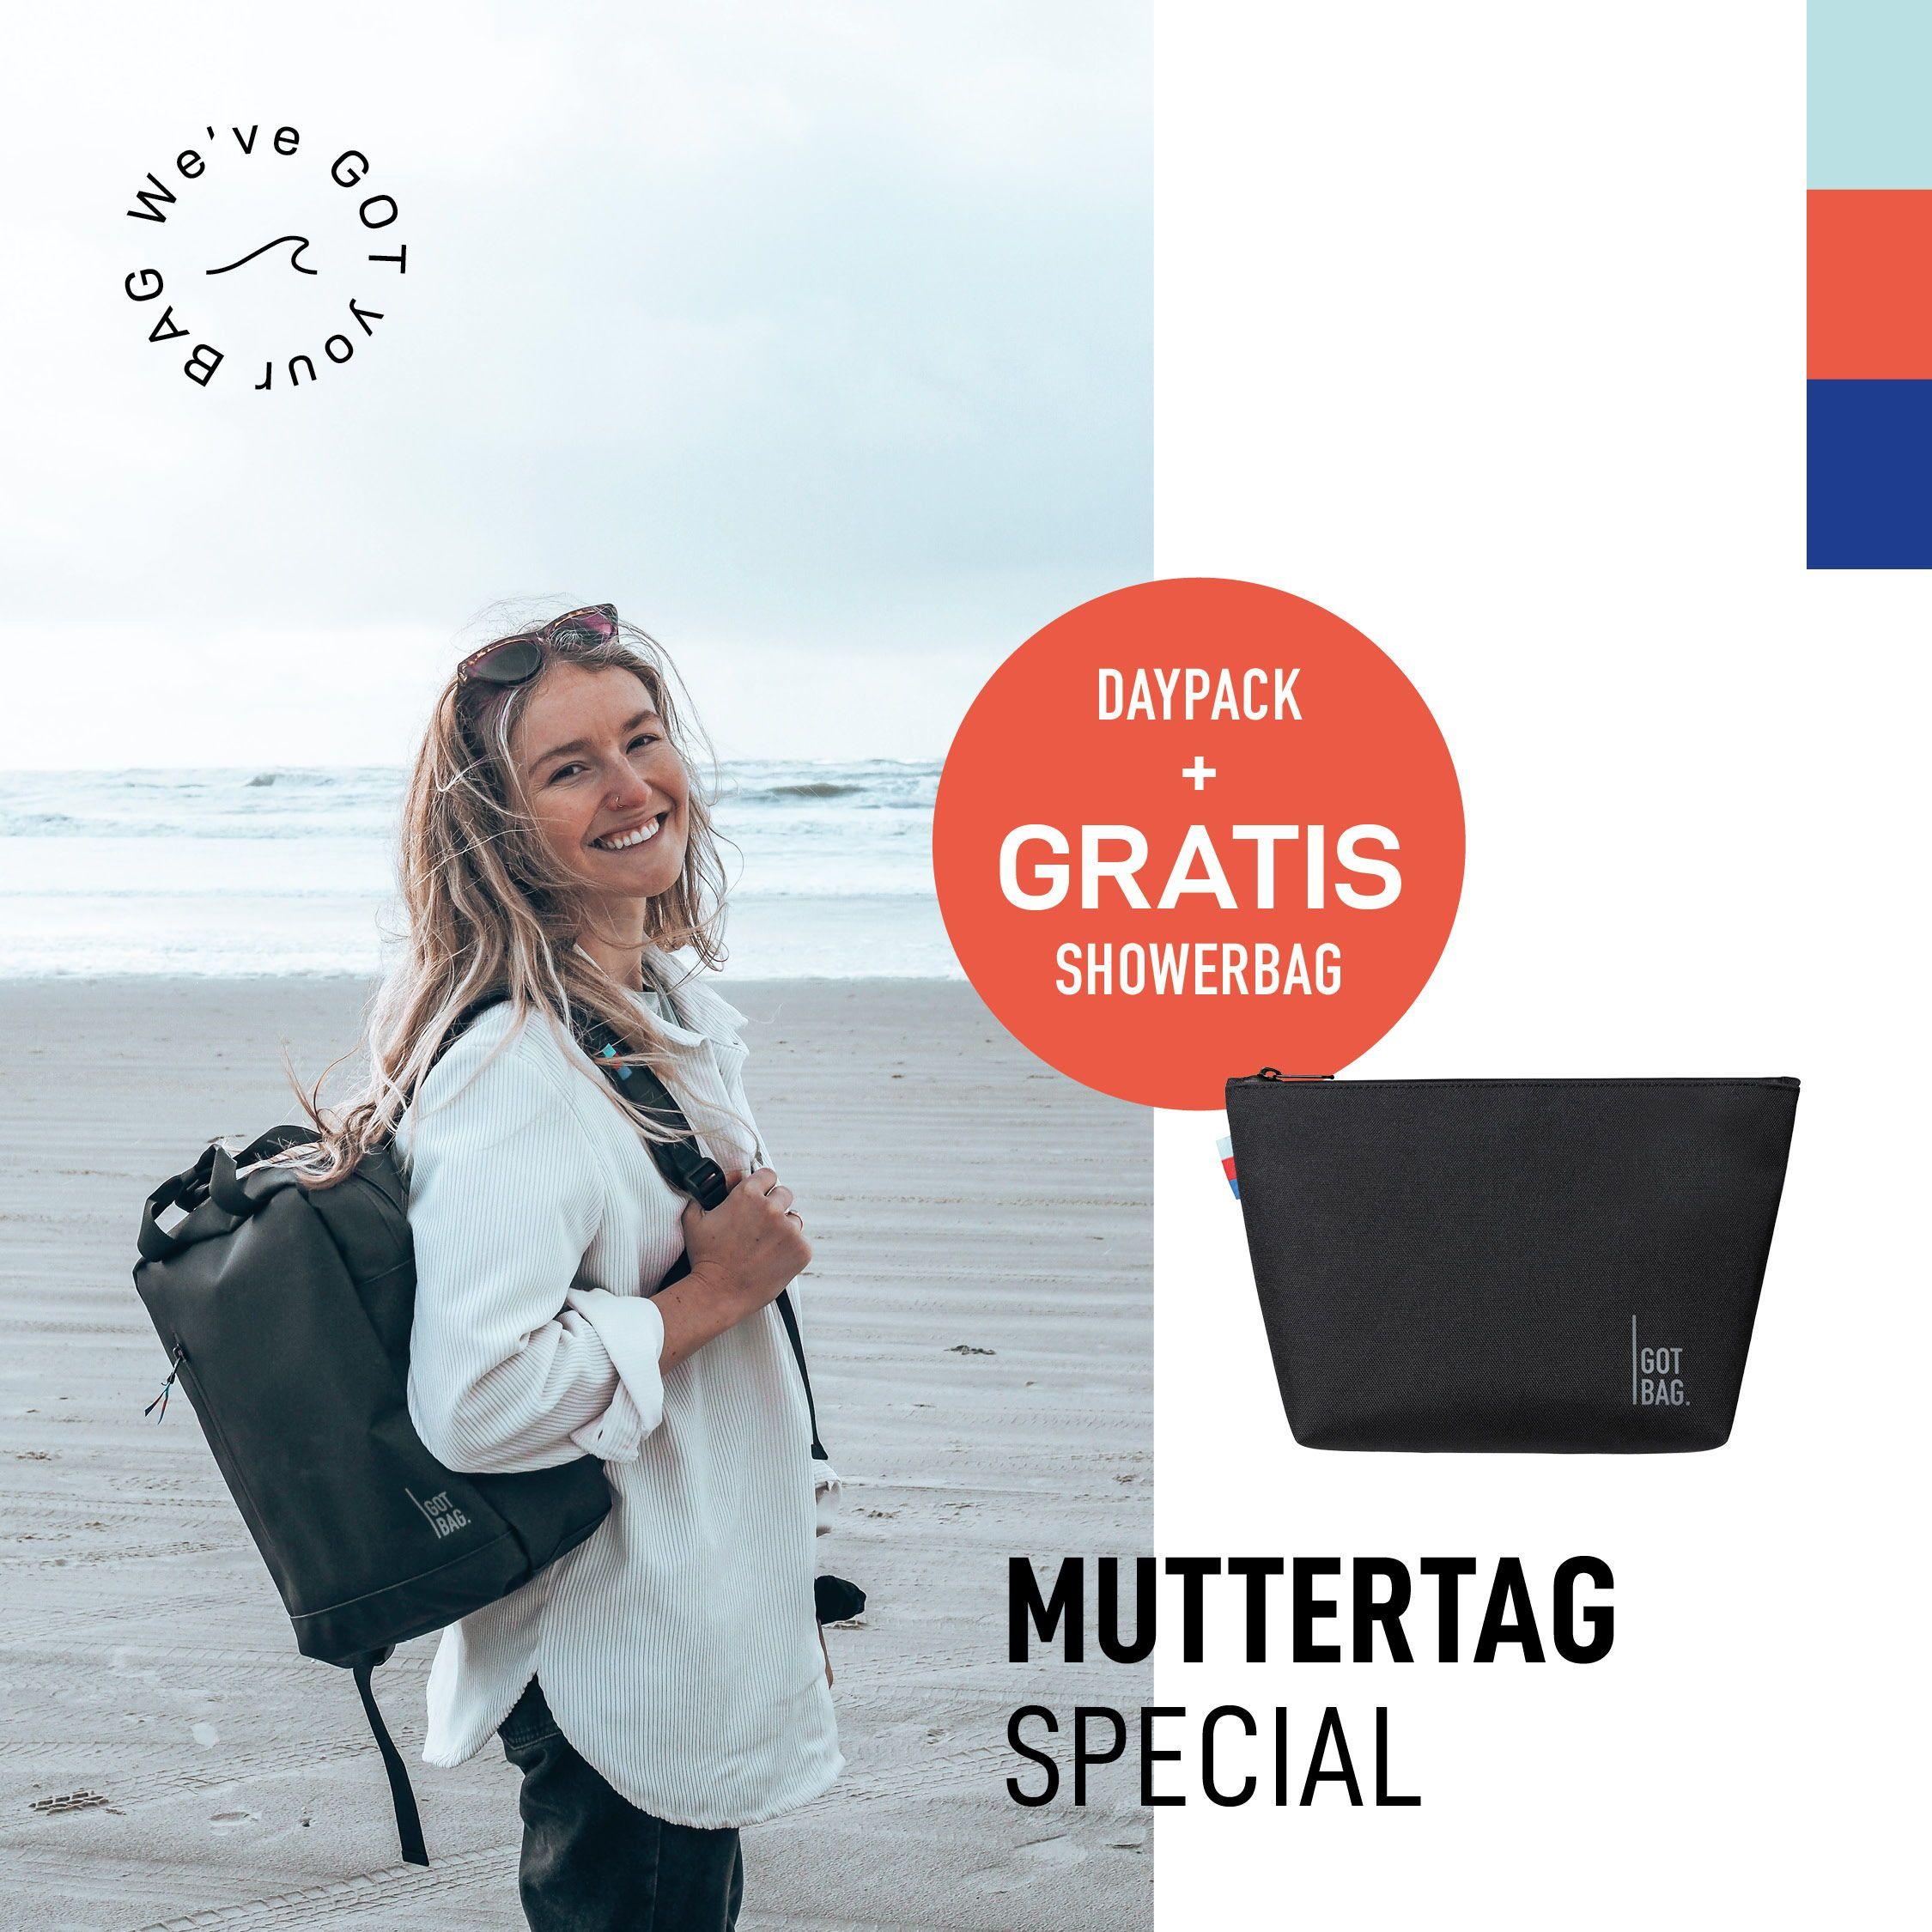 Daypack made of recycled ocean plastic by GOT BAG + FREE SHOWERBAG